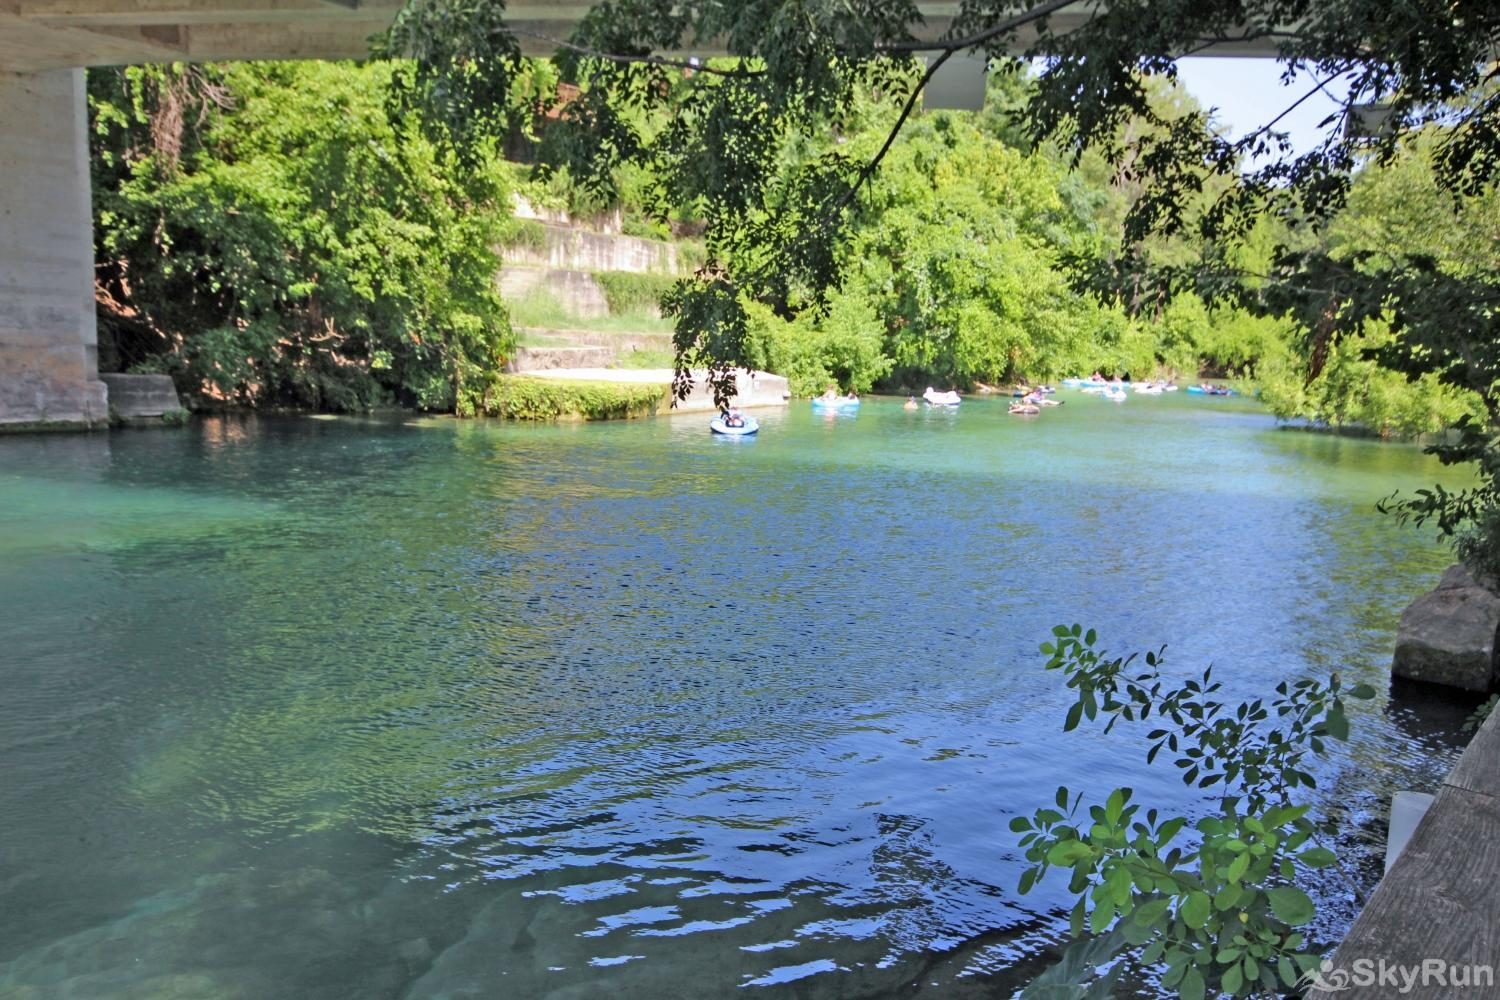 LAKESHORE ESCAPE Float the clear, cool Comal River in New Braunfels